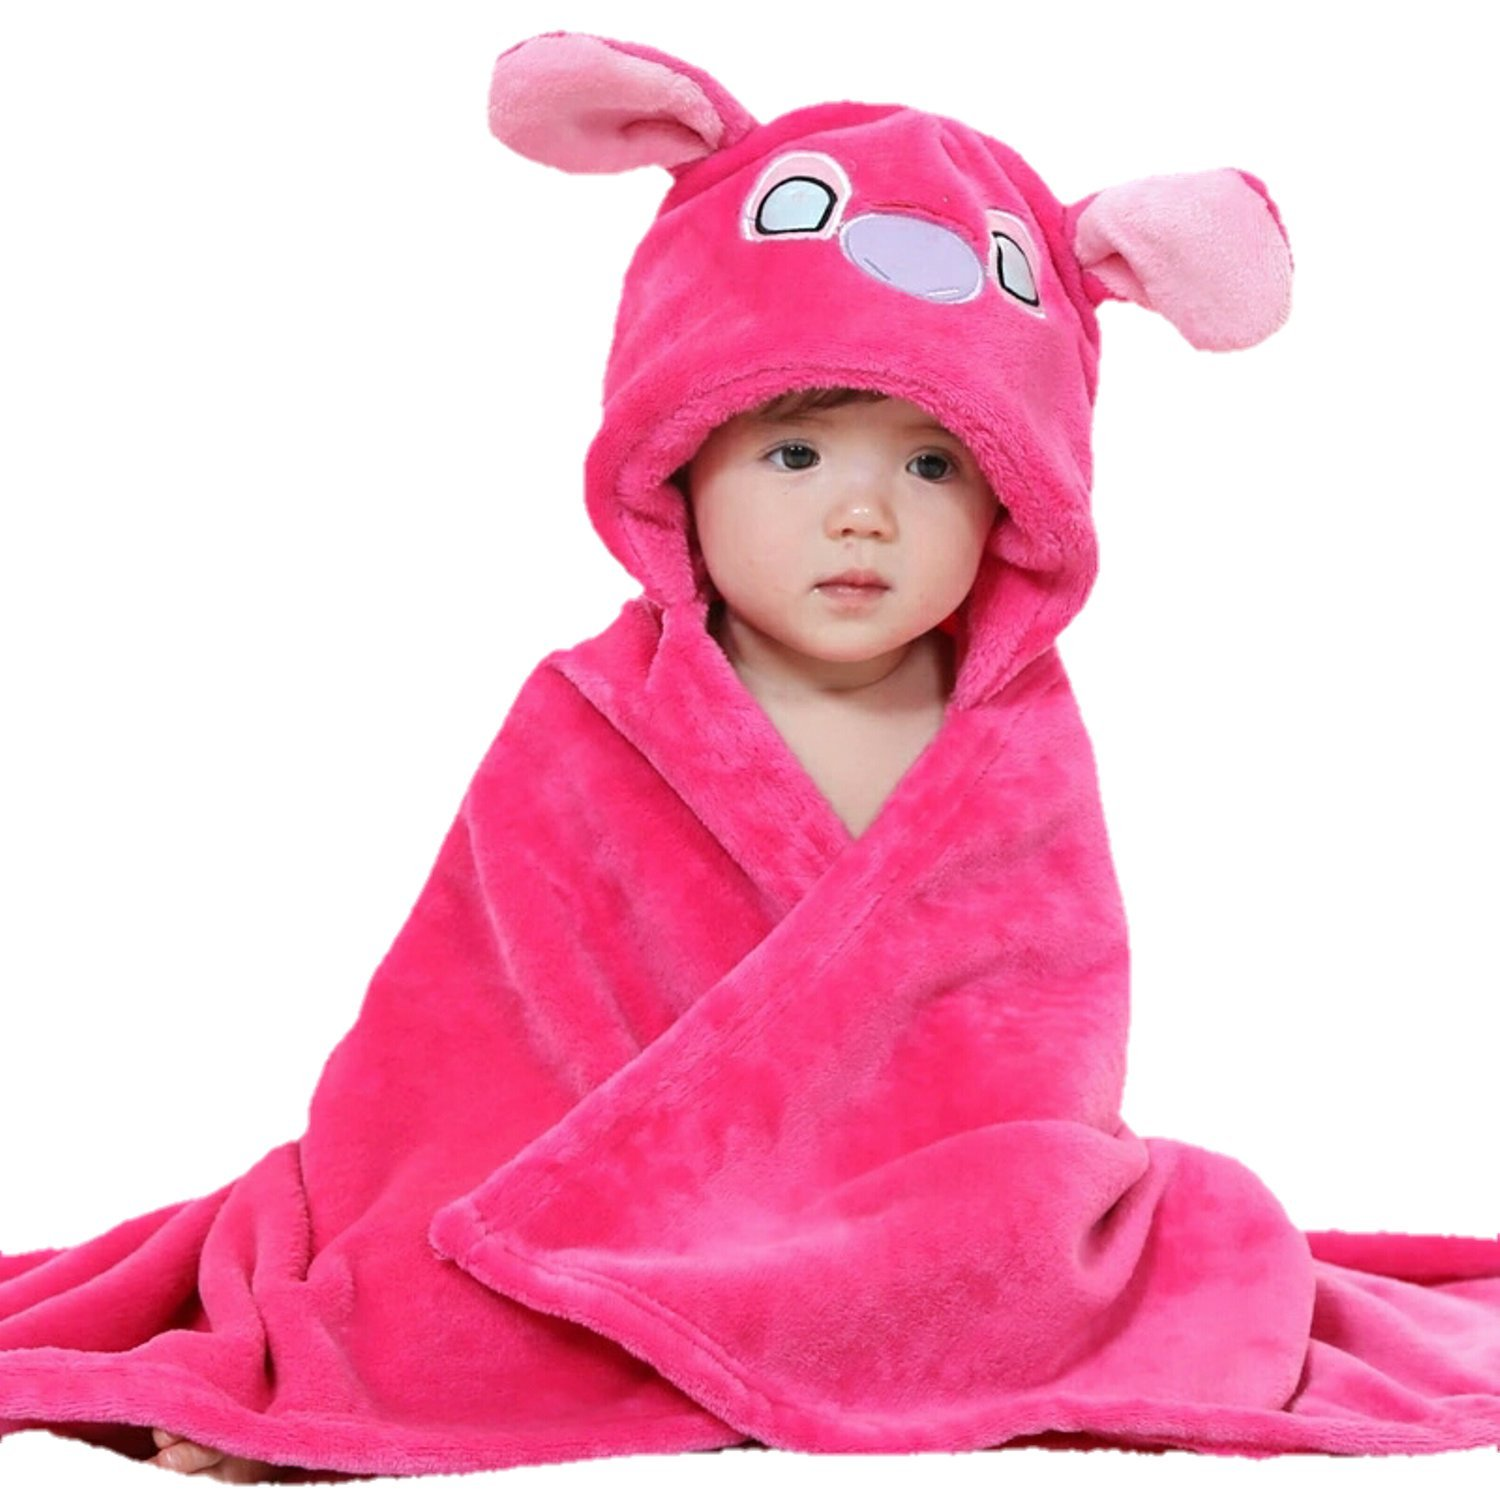 Brandonn Premium Fashions Hooded Baby Blanket (Hot Pink)